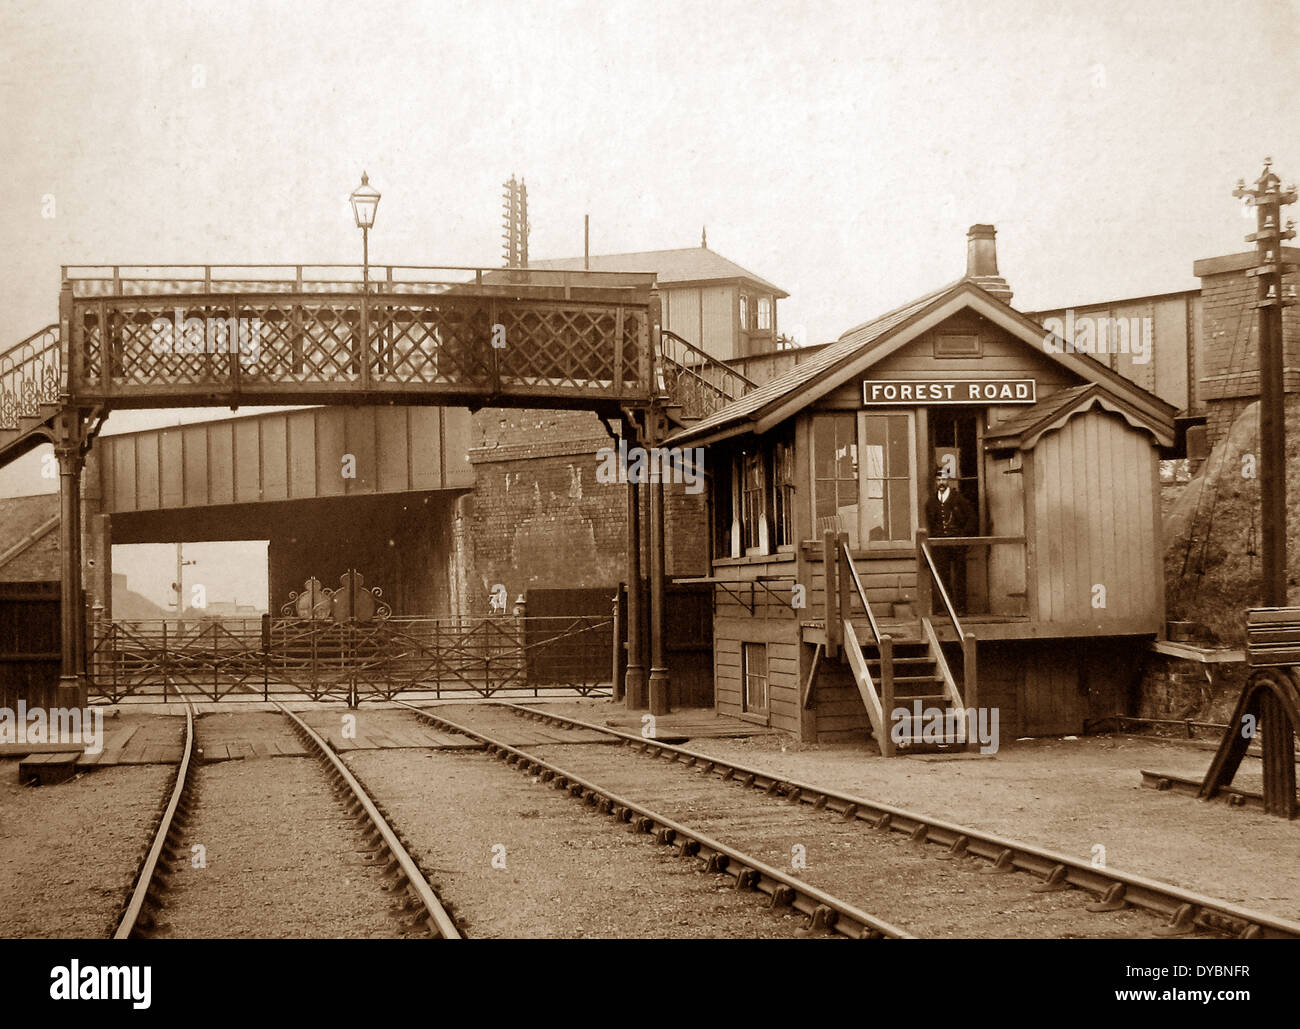 Leicester - Forest Road Signal Box in 1903 - Stock Image